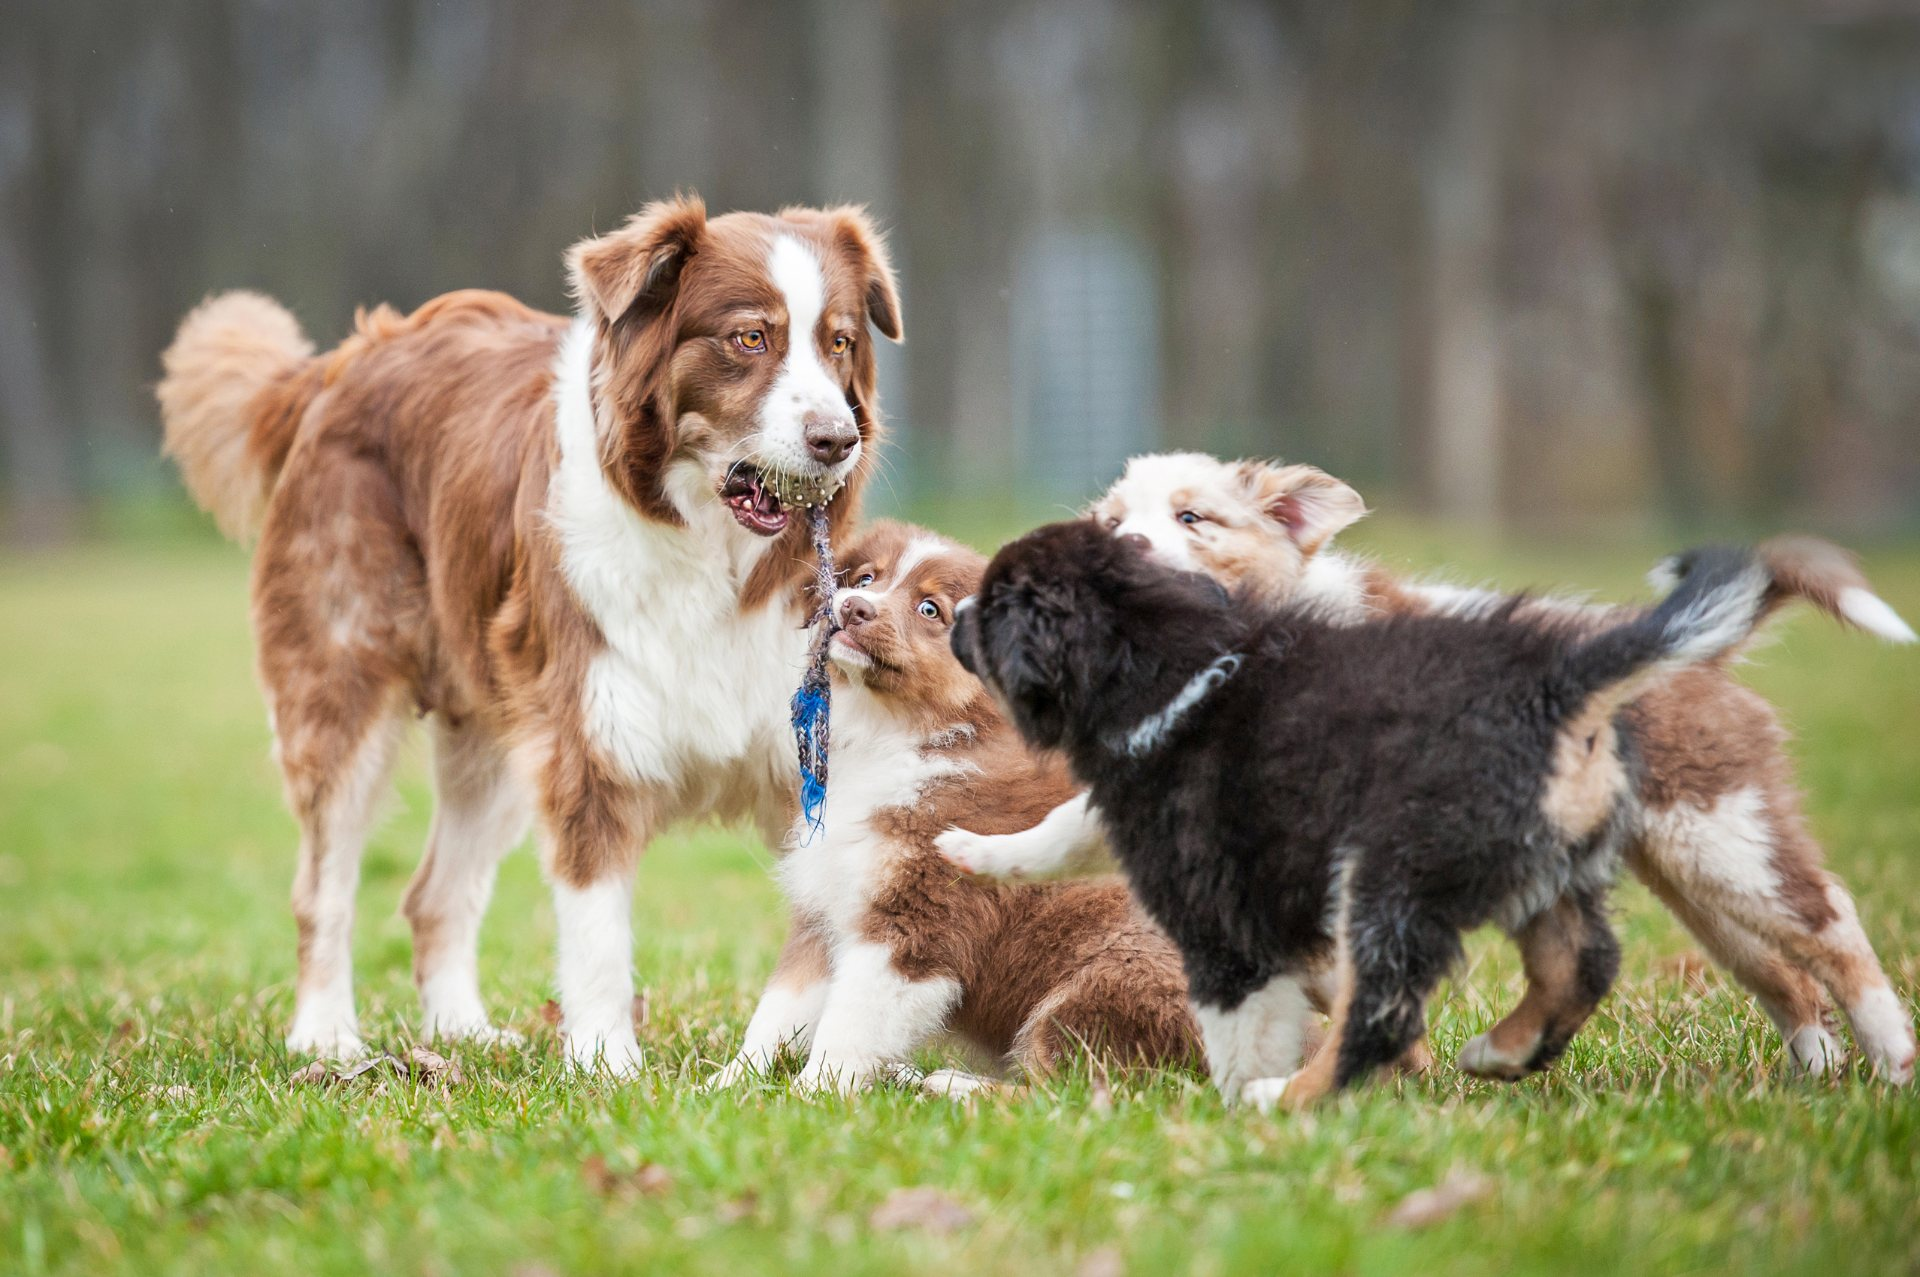 Puppies playing with an older dog